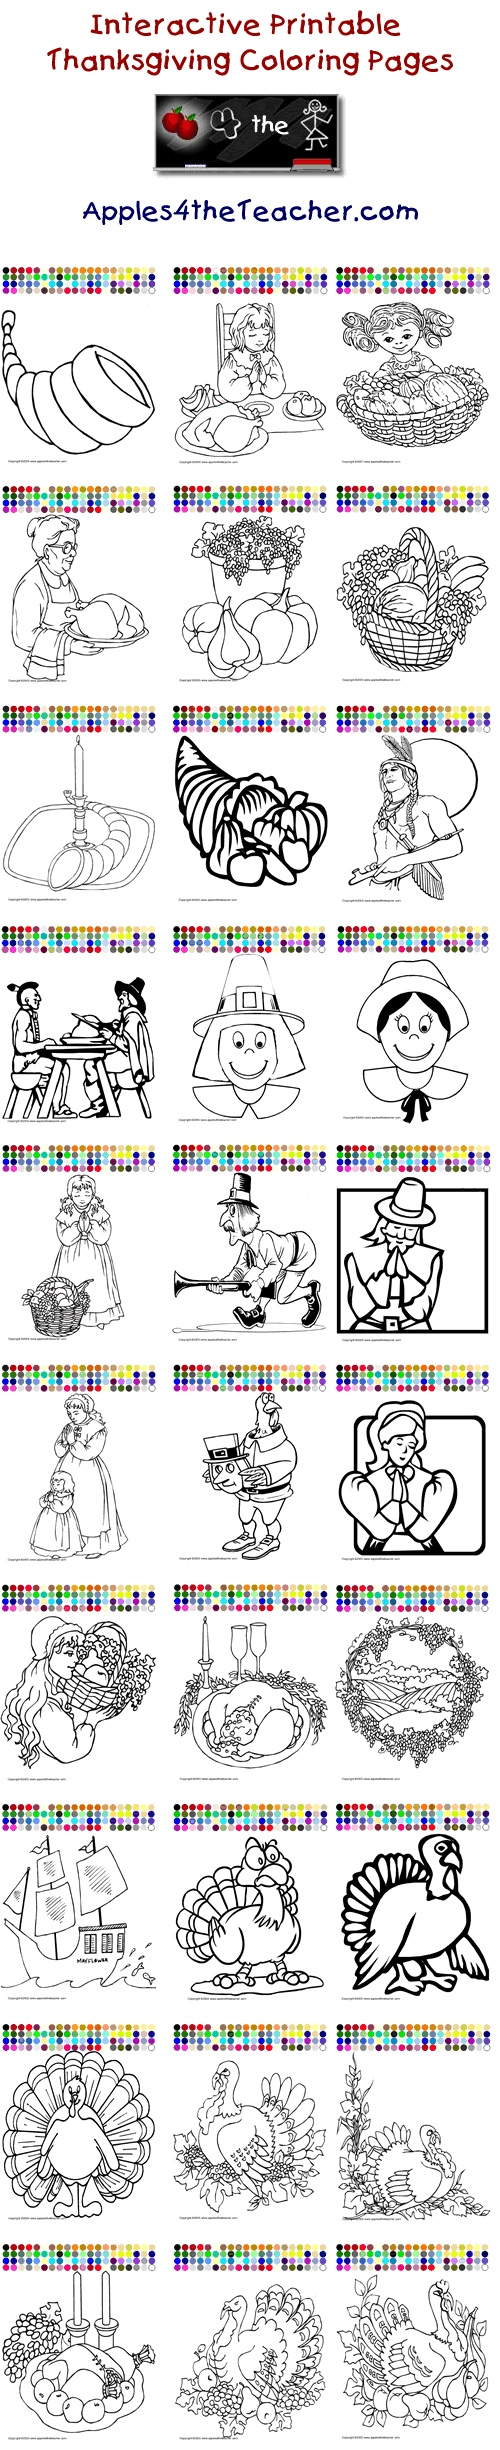 interactive thanksgiving coloring pages - photo#35